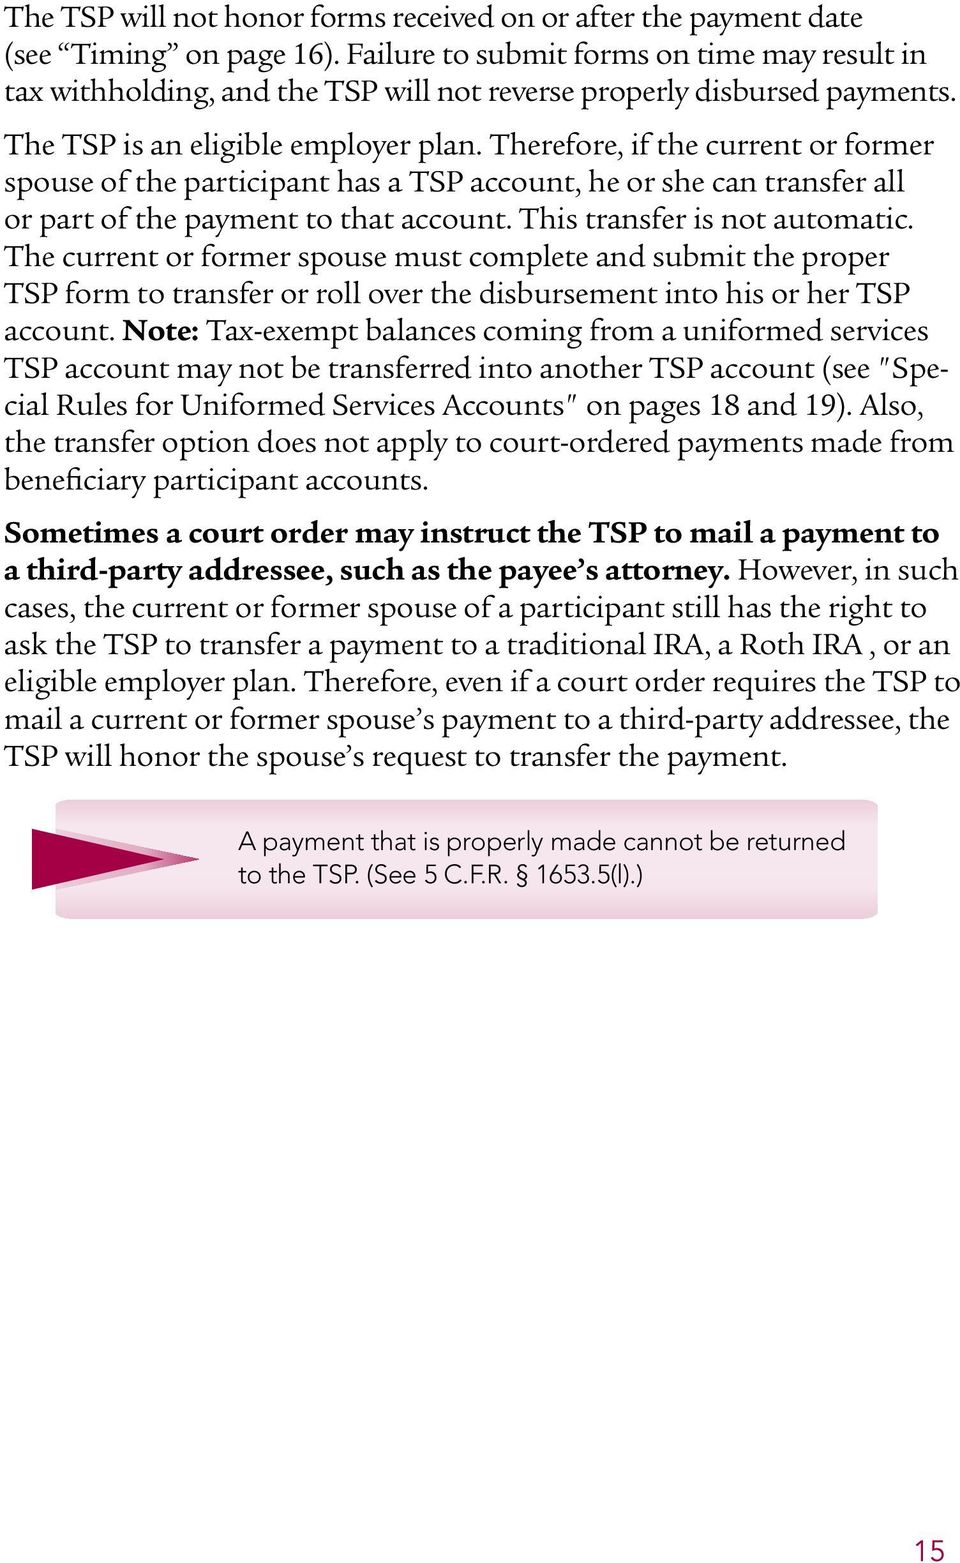 Therefore, if the current or former spouse of the participant has a TSP account, he or she can transfer all or part of the payment to that account. This transfer is not automatic.